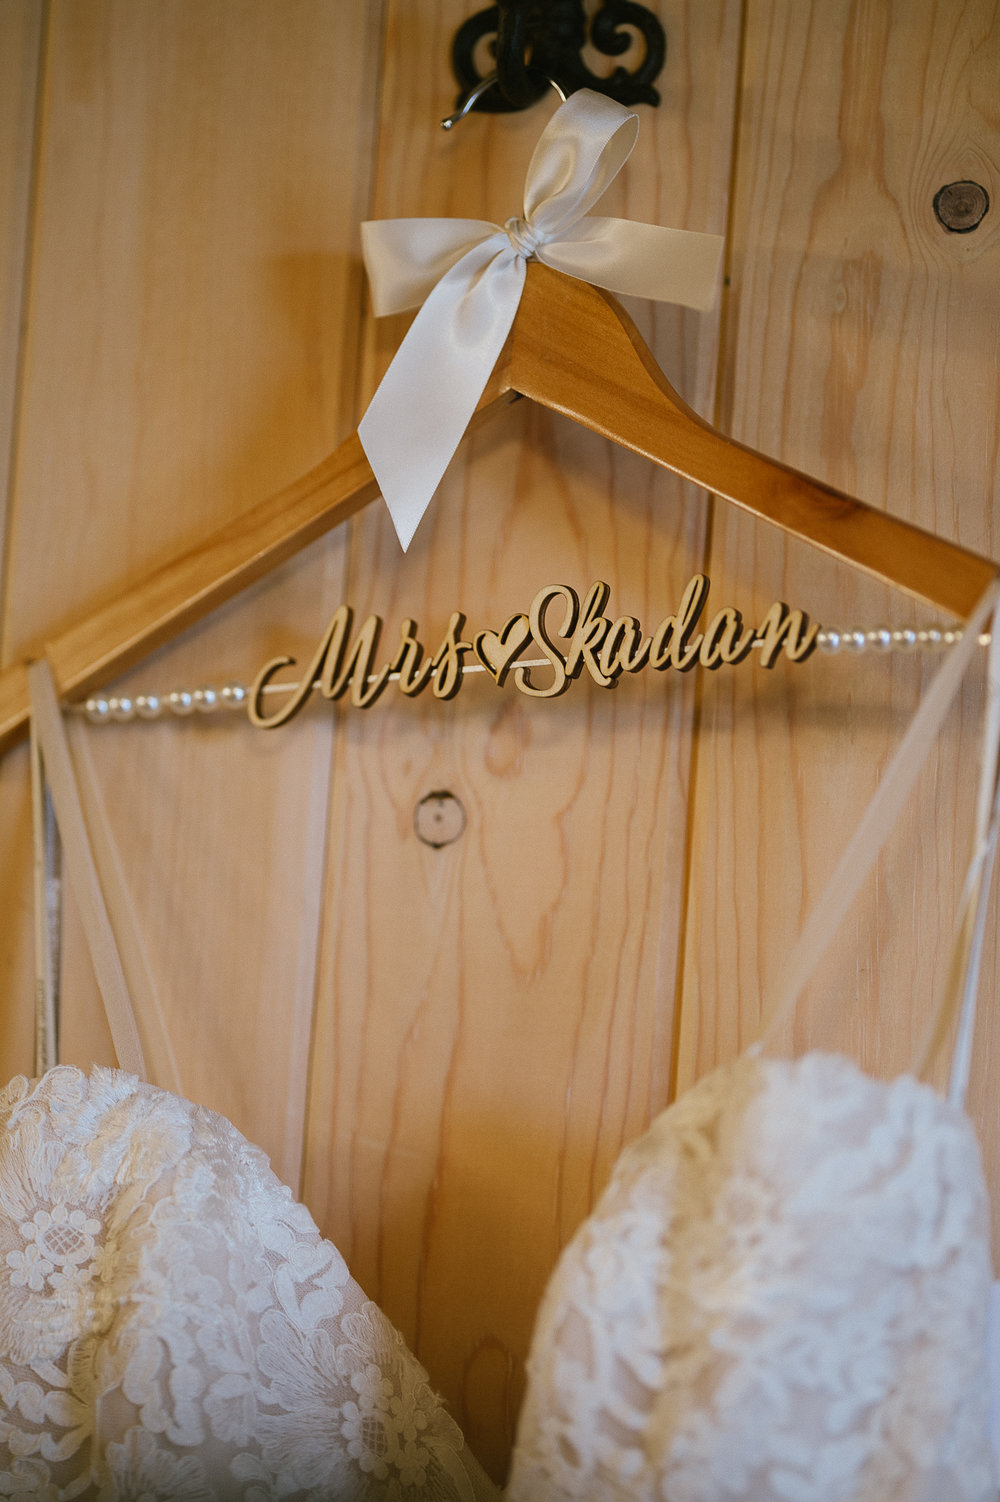 Swan Trail Farm Wedding_Sarah Schurman + Brian Skadan_Snohomish Wedding_Kelsey Lane Photography-5566.jpg